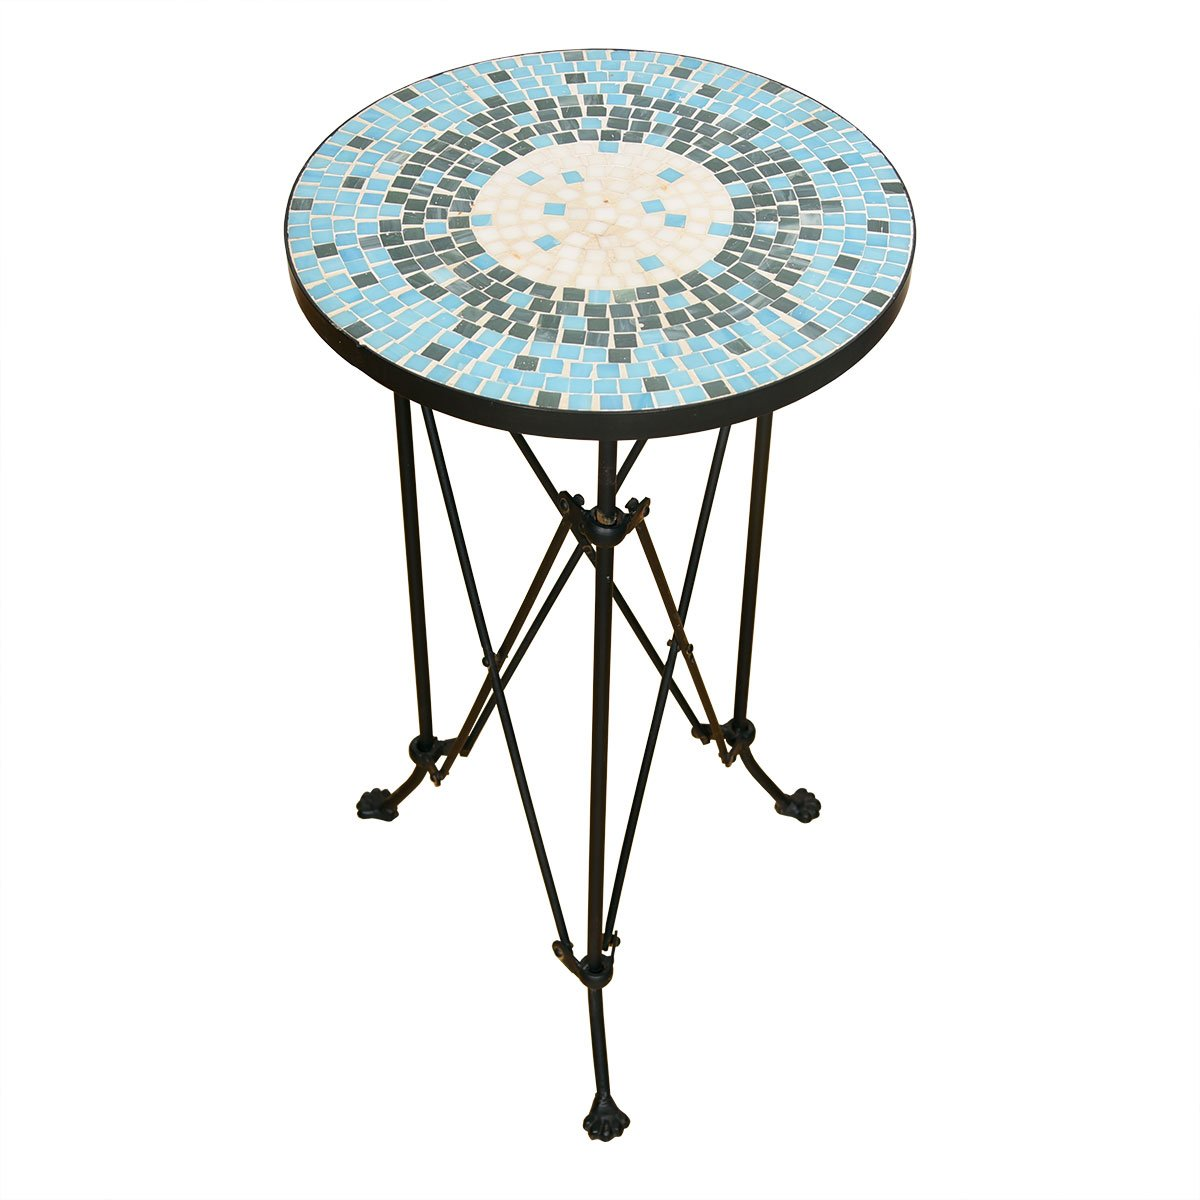 Wrought Iron Mid Century Mosaic Tile Top Accent Table